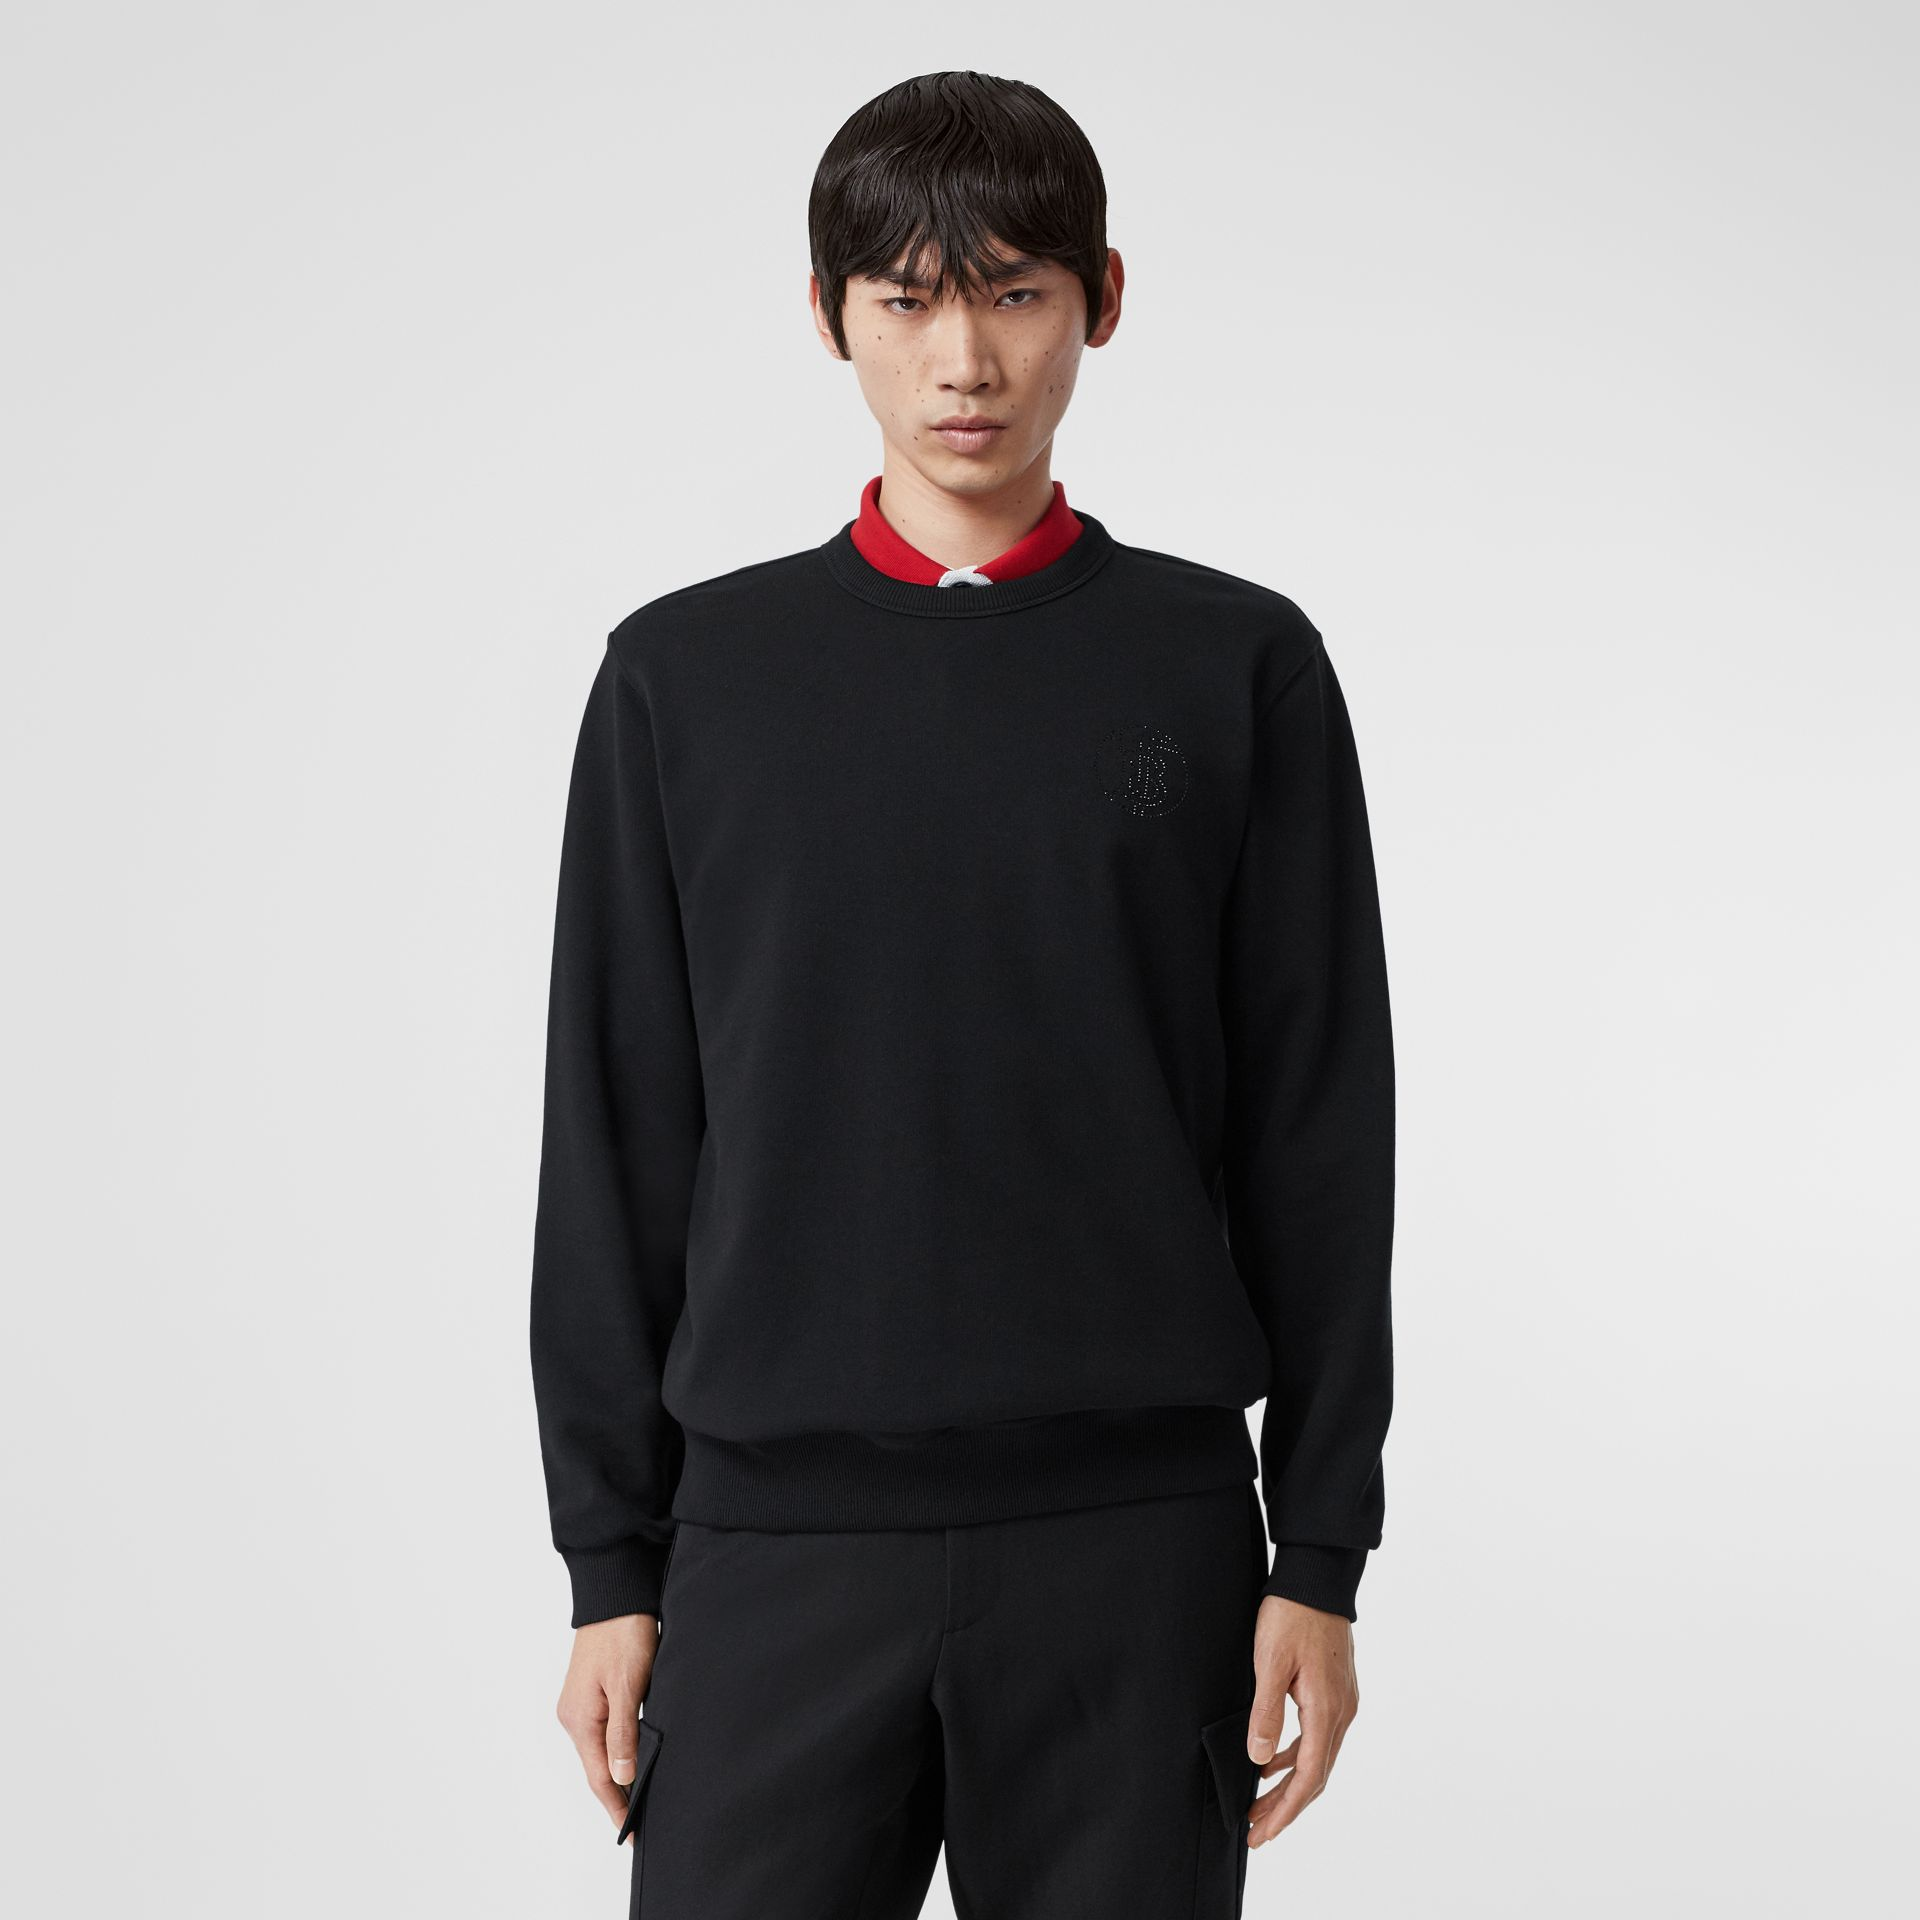 Crystal Monogram Motif Cotton Sweatshirt in Black - Men | Burberry Hong Kong S.A.R - gallery image 0